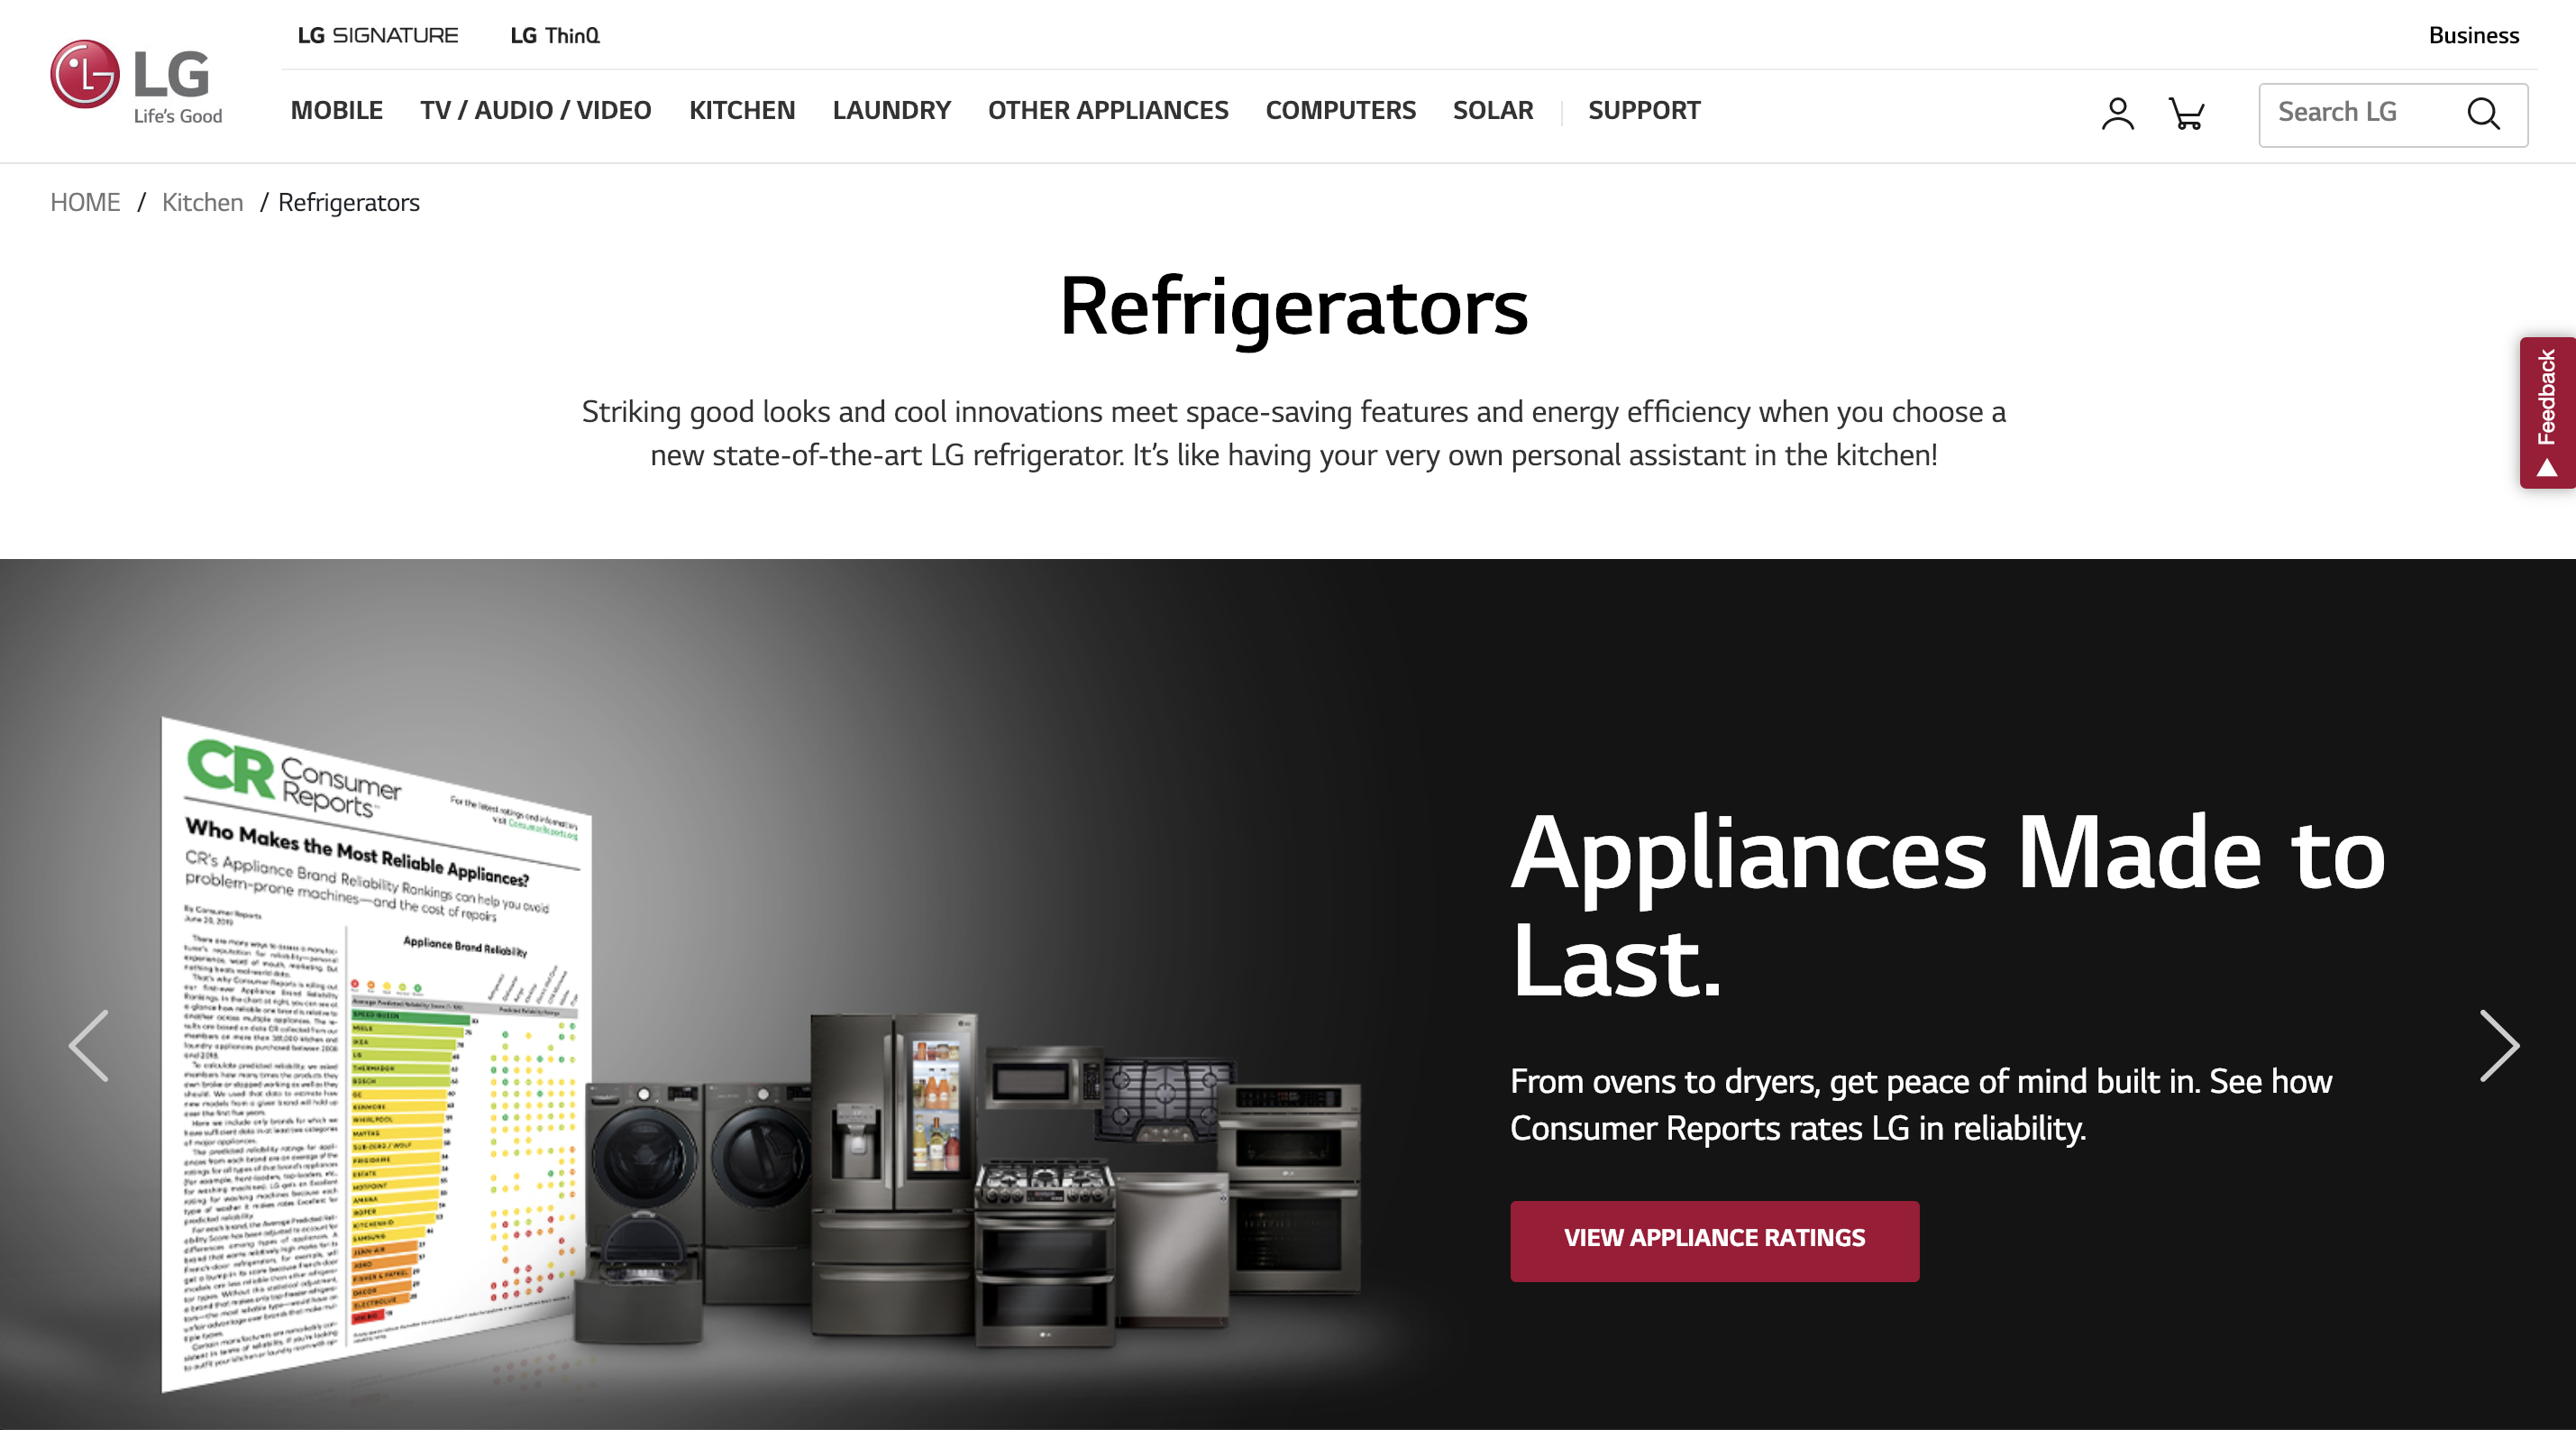 LG-refrigerators-category-page-appliance-ratings-hero